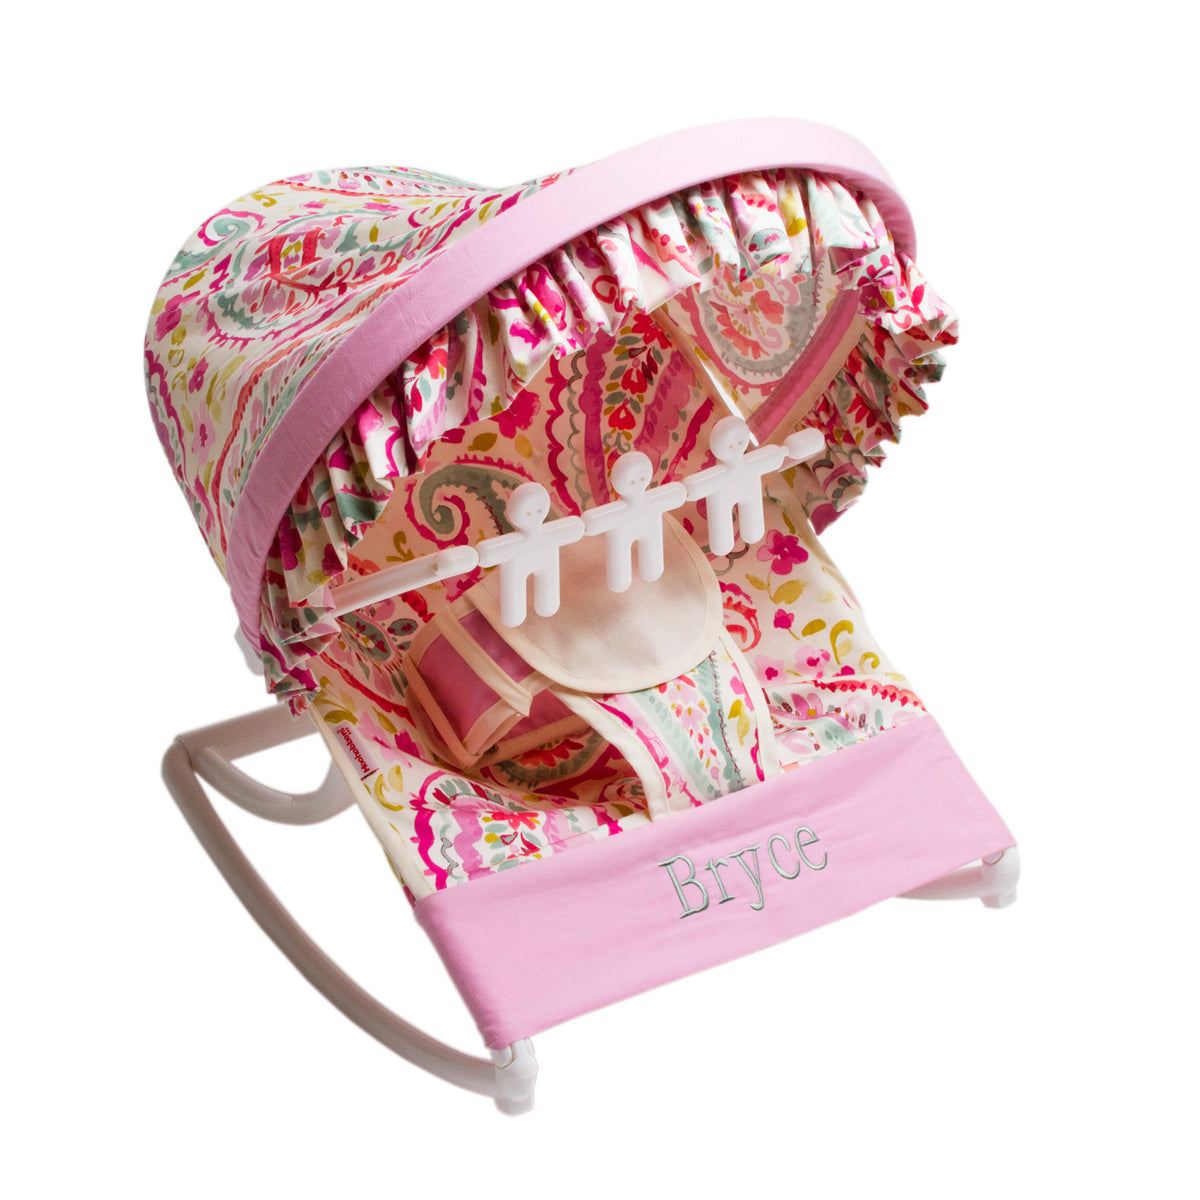 Personalized Baby Rocker